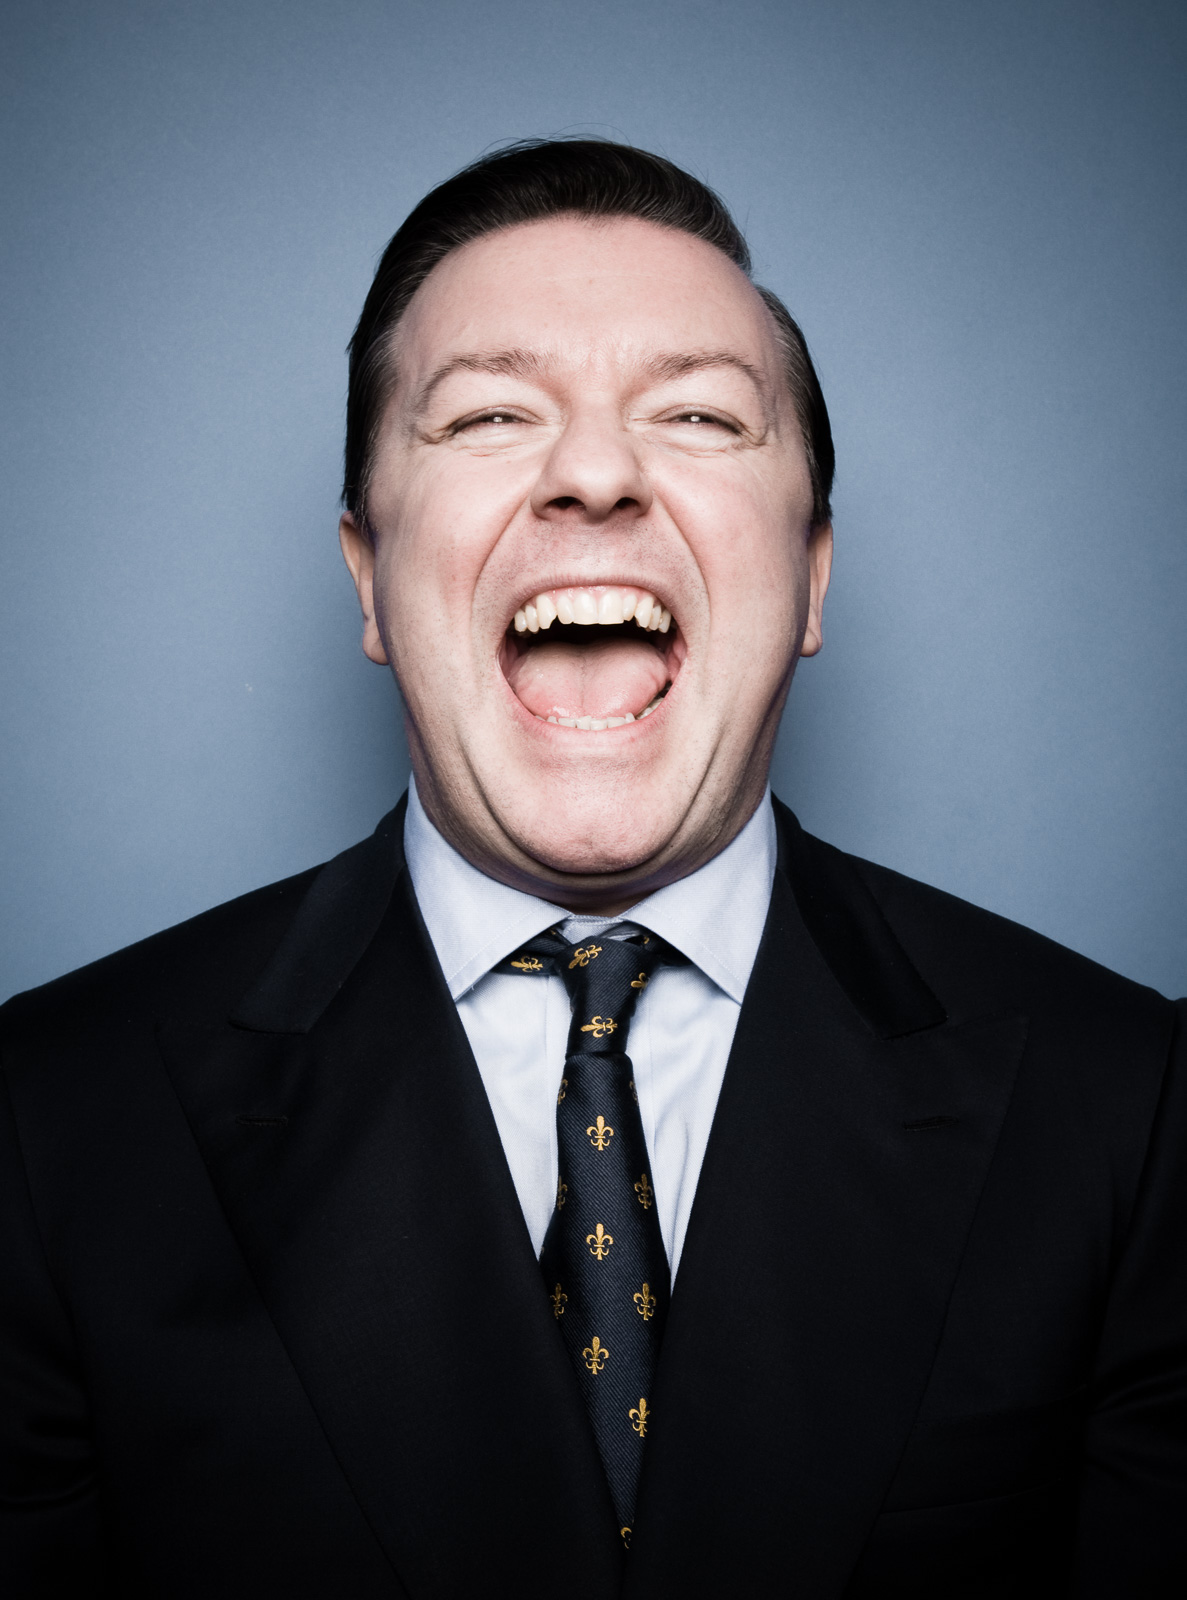 Ricky Gervais / Actor Writer